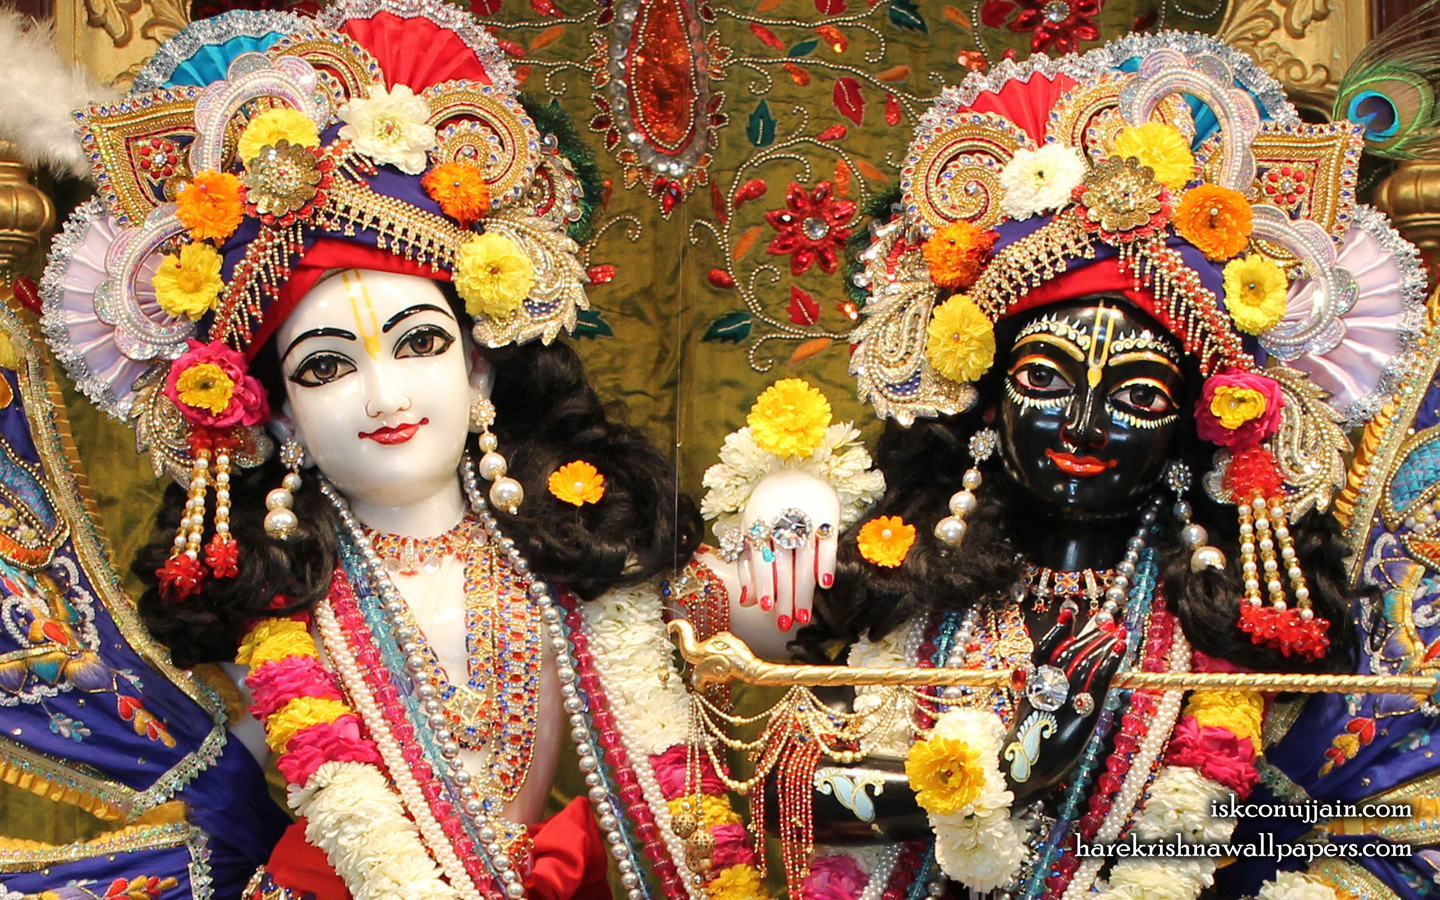 Sri Sri Krishna Balaram Close up Wallpaper (001) Size 1440x900 Download